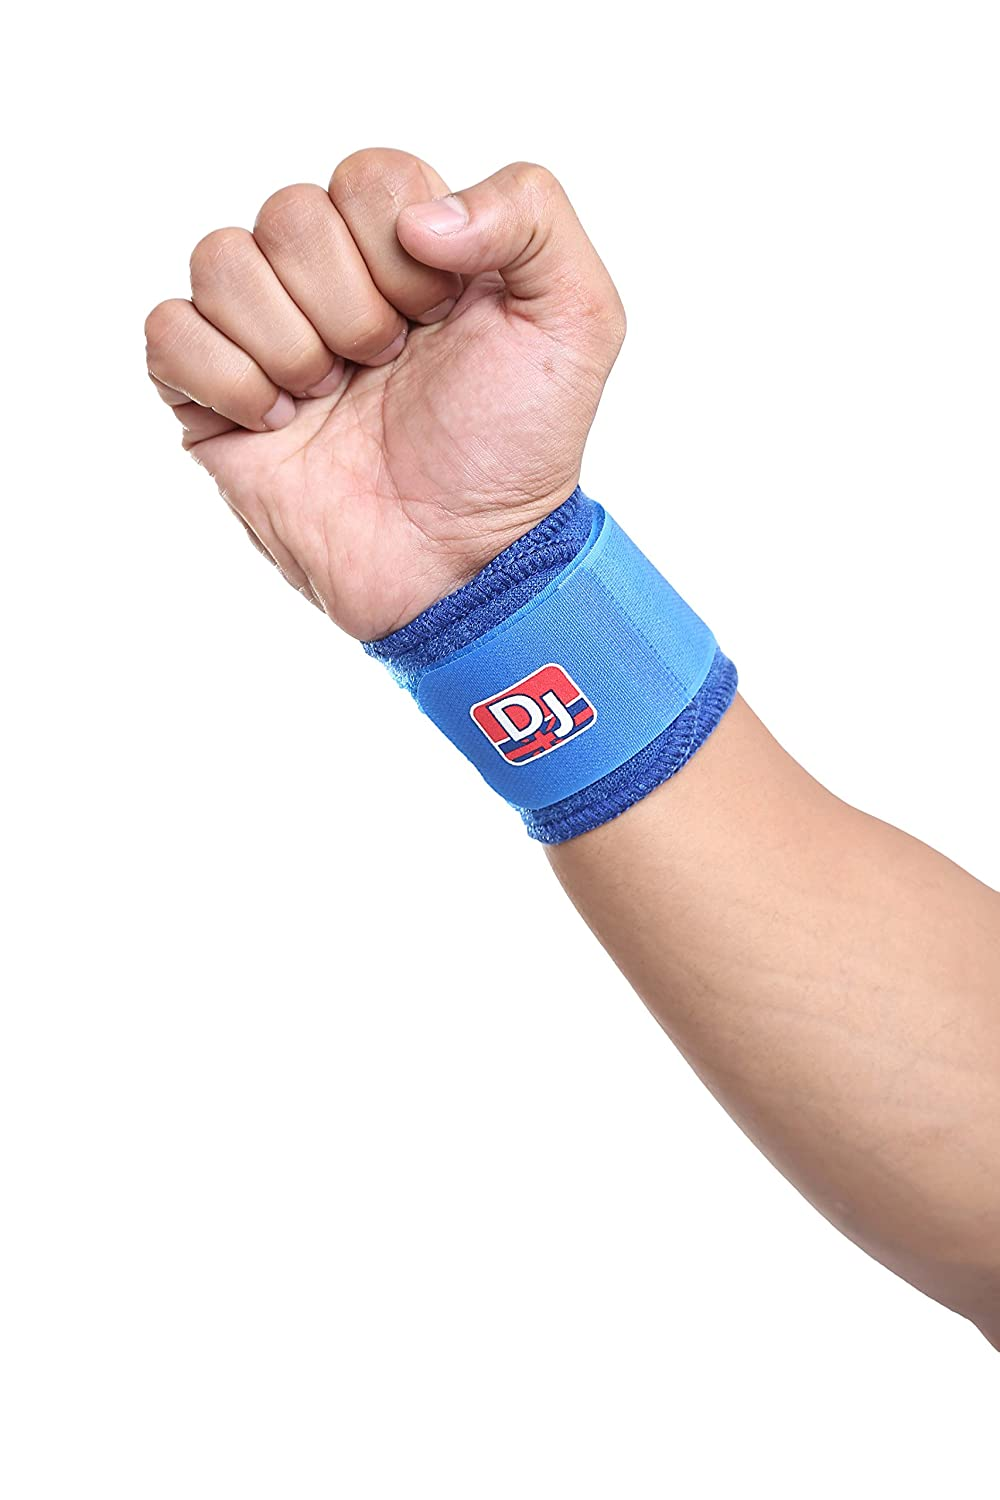 For 99/-(90% Off) DJ Support Neoprene Wrist Wrap at Amazon India